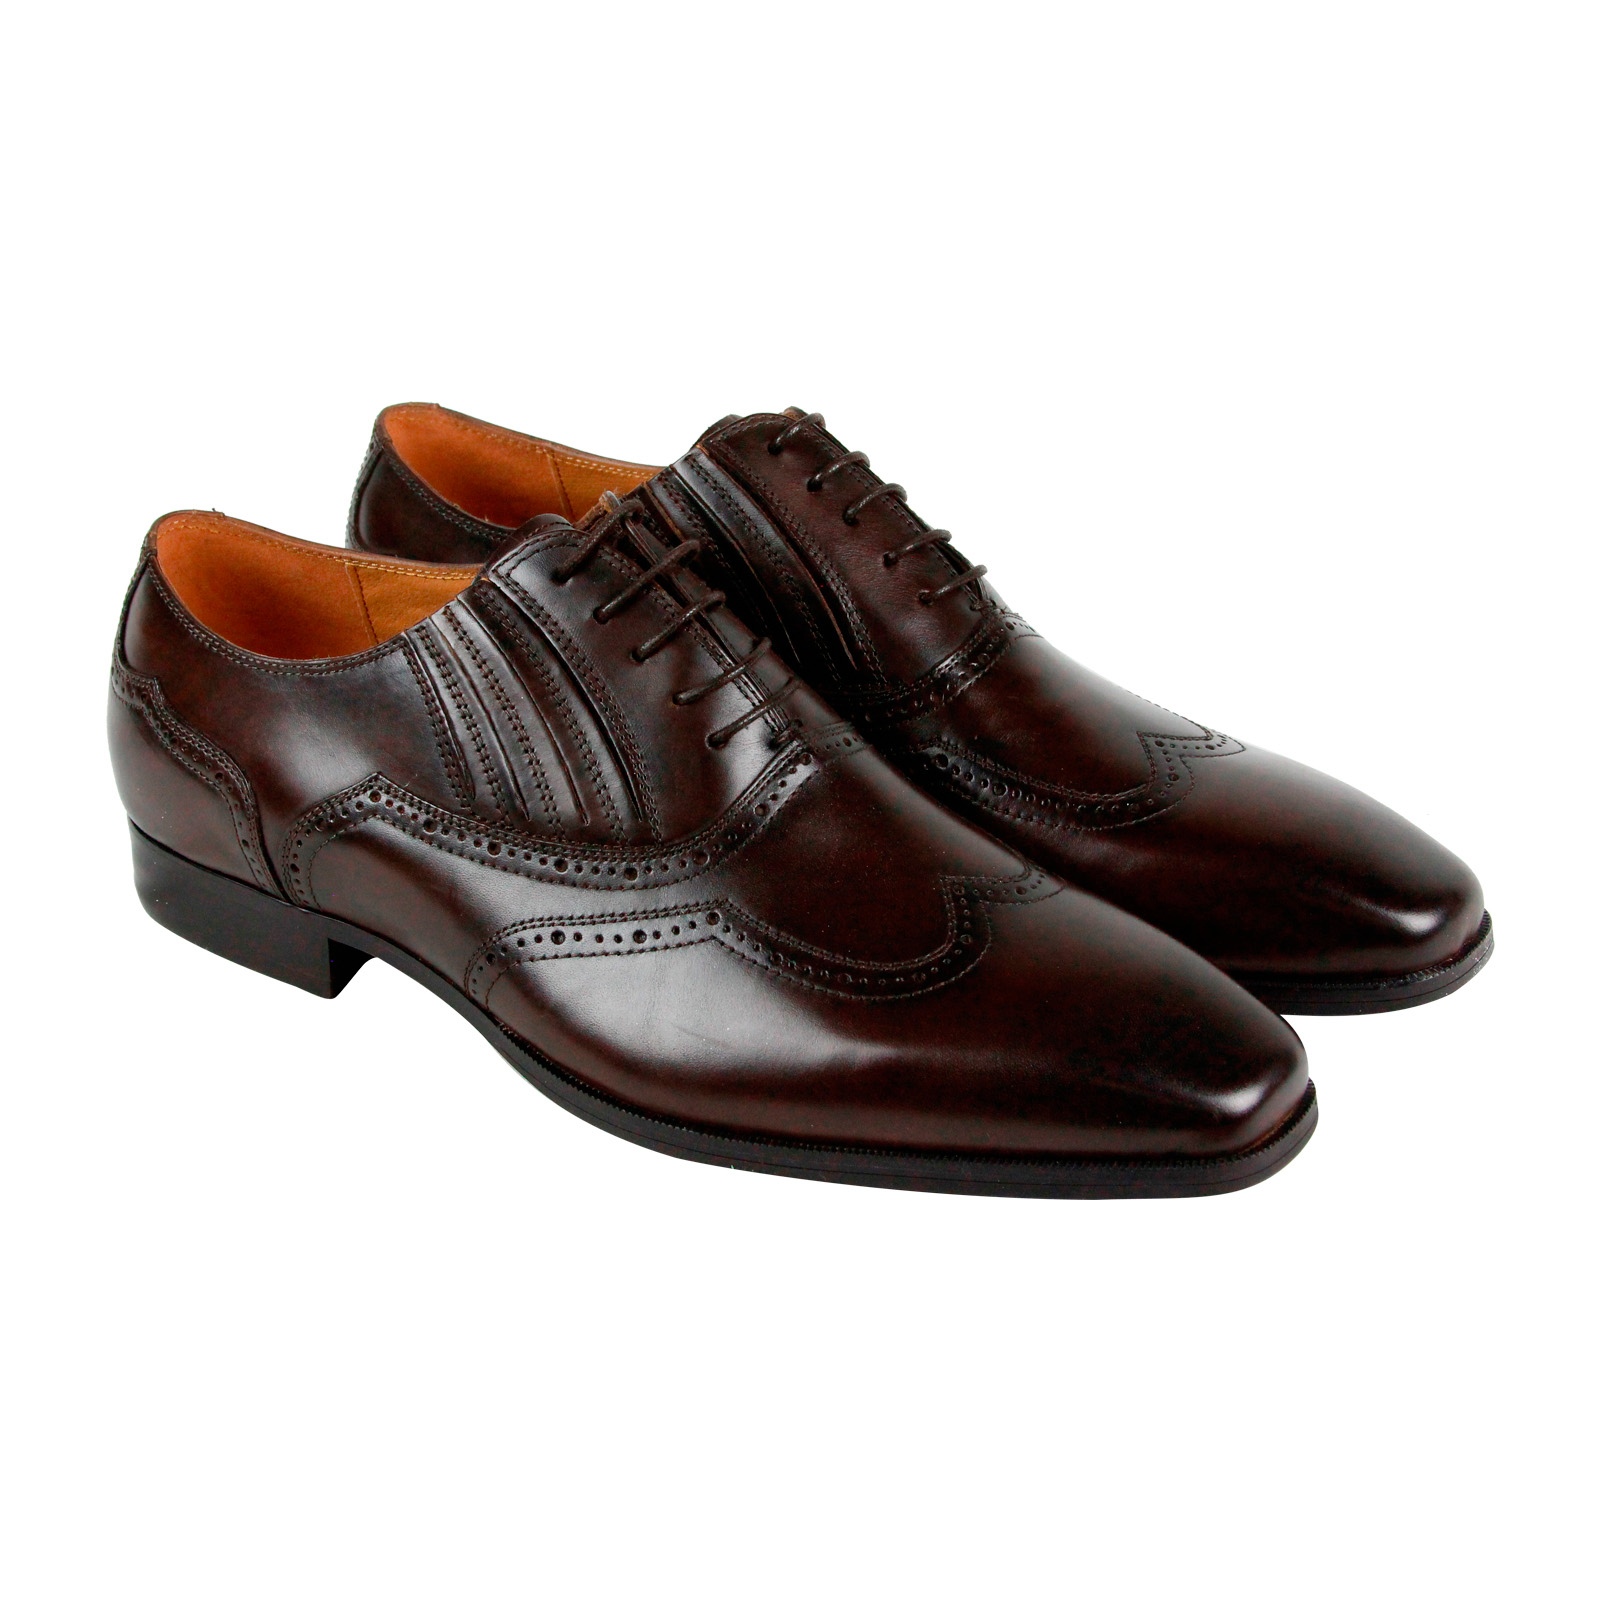 Steve-Madden-Masque-Mens-Brown-Leather-Casual-Dress-Lace-Up-Oxfords-Shoes-10-5